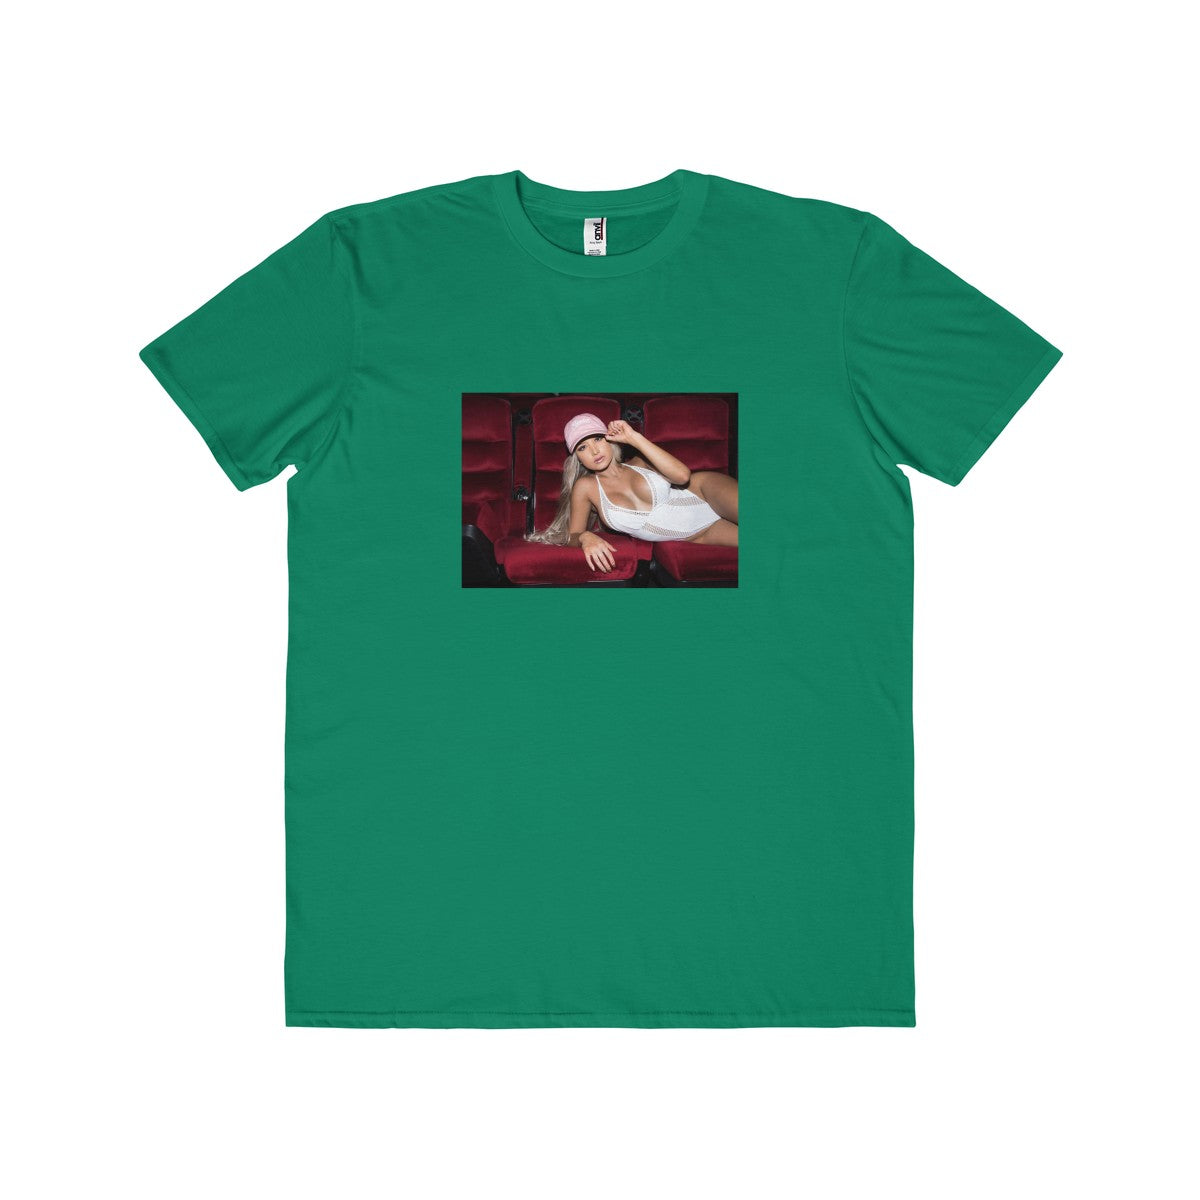 Men's Lightweight Fashion Tee with Lexi Kai Photo on front